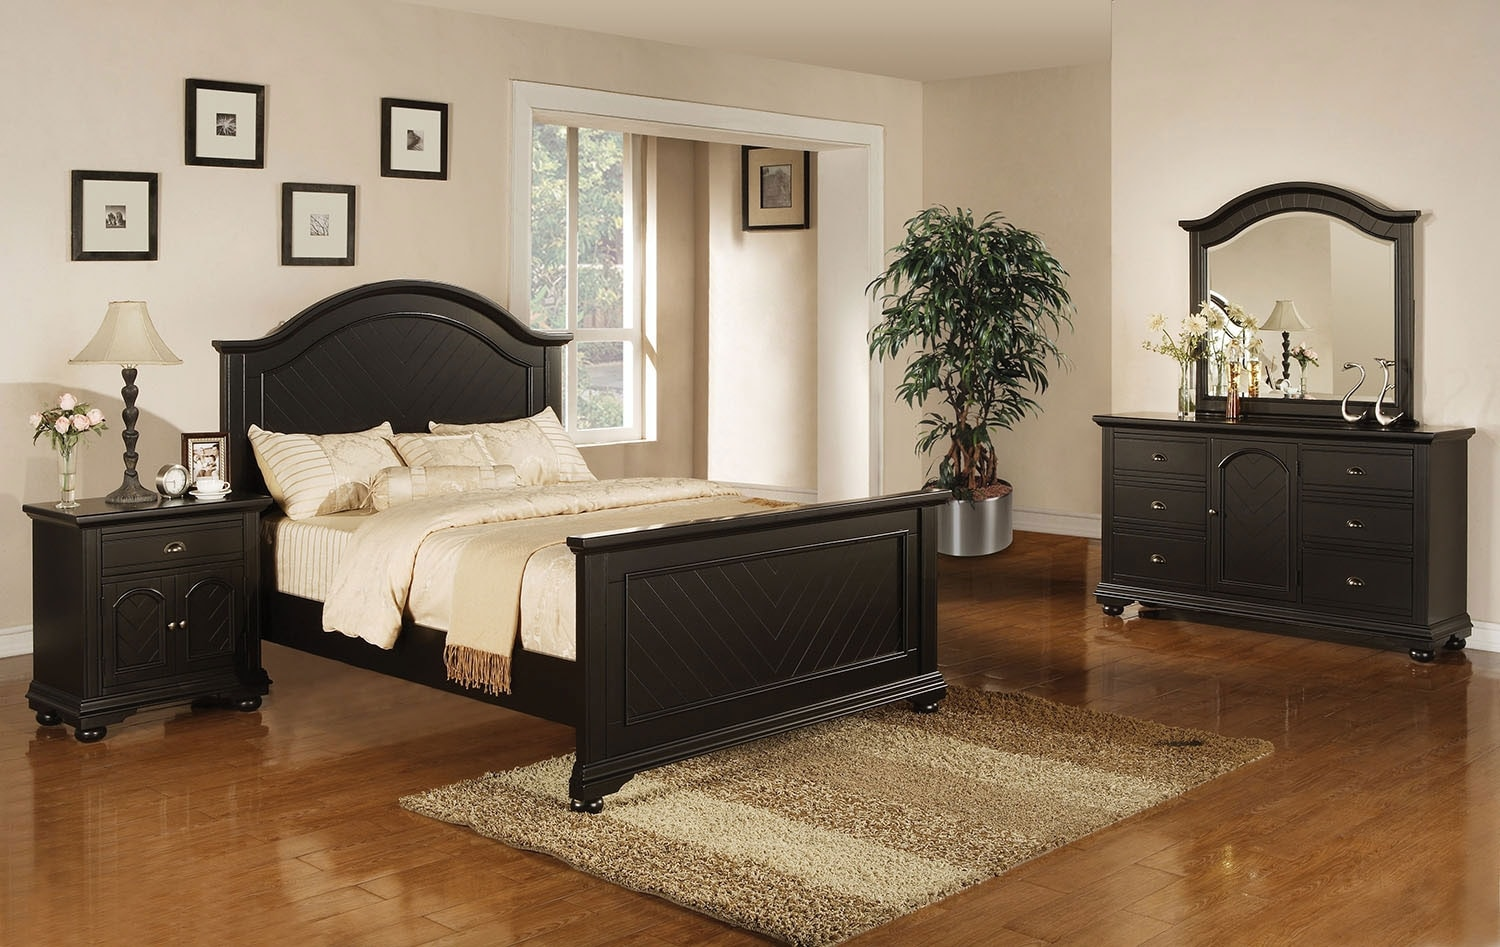 Bedroom Furniture - Brook Black Queen 6-Piece Bedroom Package